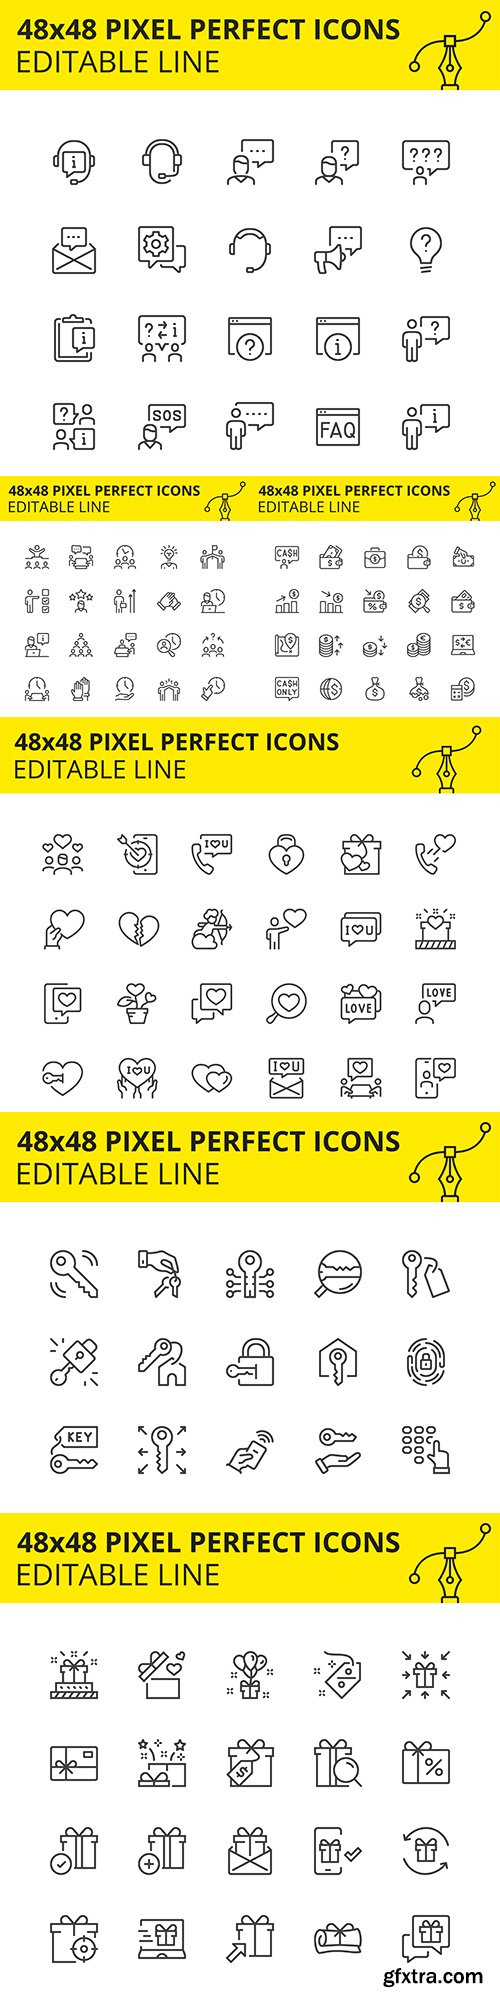 Pixel perfect editable icons simple design